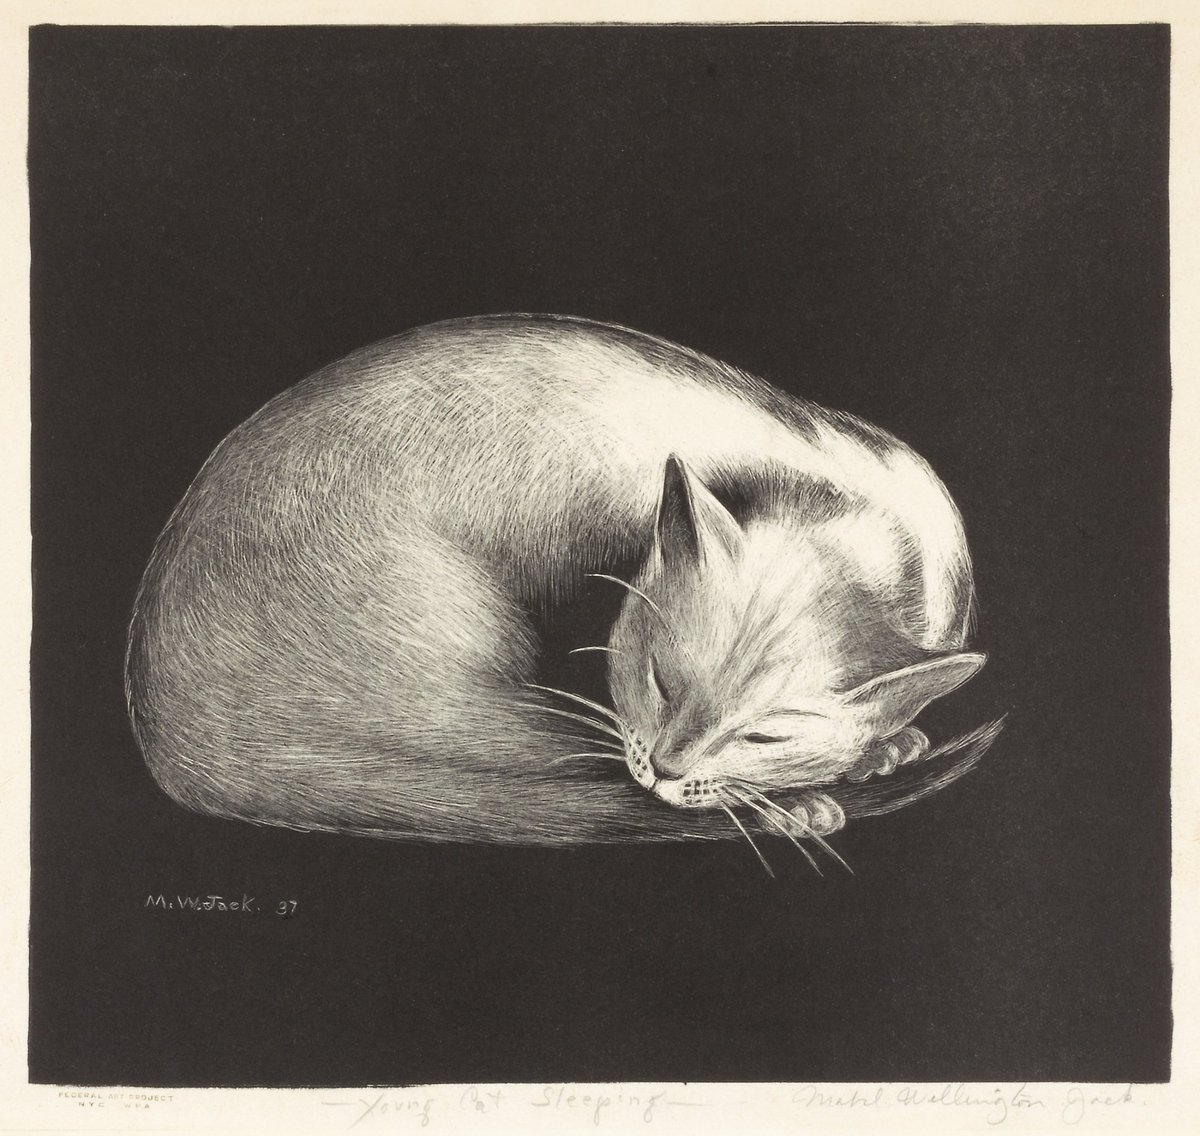 I'm not kitten around, I think you're purrrrfect 😻→ https://americanart.si.edu/artwork/young-cat-sleeping-11238…  What can we say, we're feeling a little punny this #ValentinesDay 😉